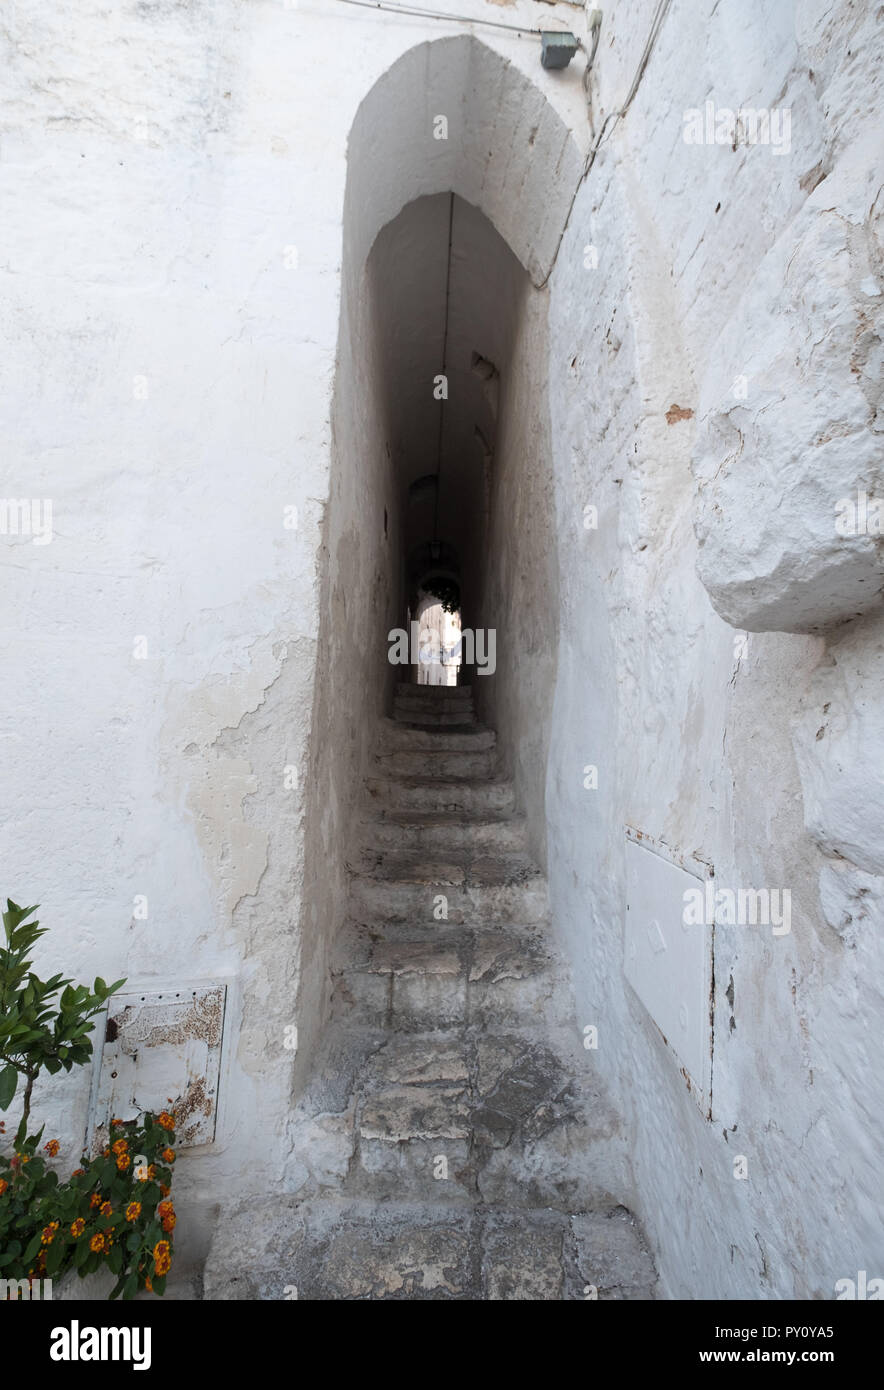 Ostuni Italy. White washed buildings on a stepped street in Ostuni in Puglia, Southern Italy. Stock Photo